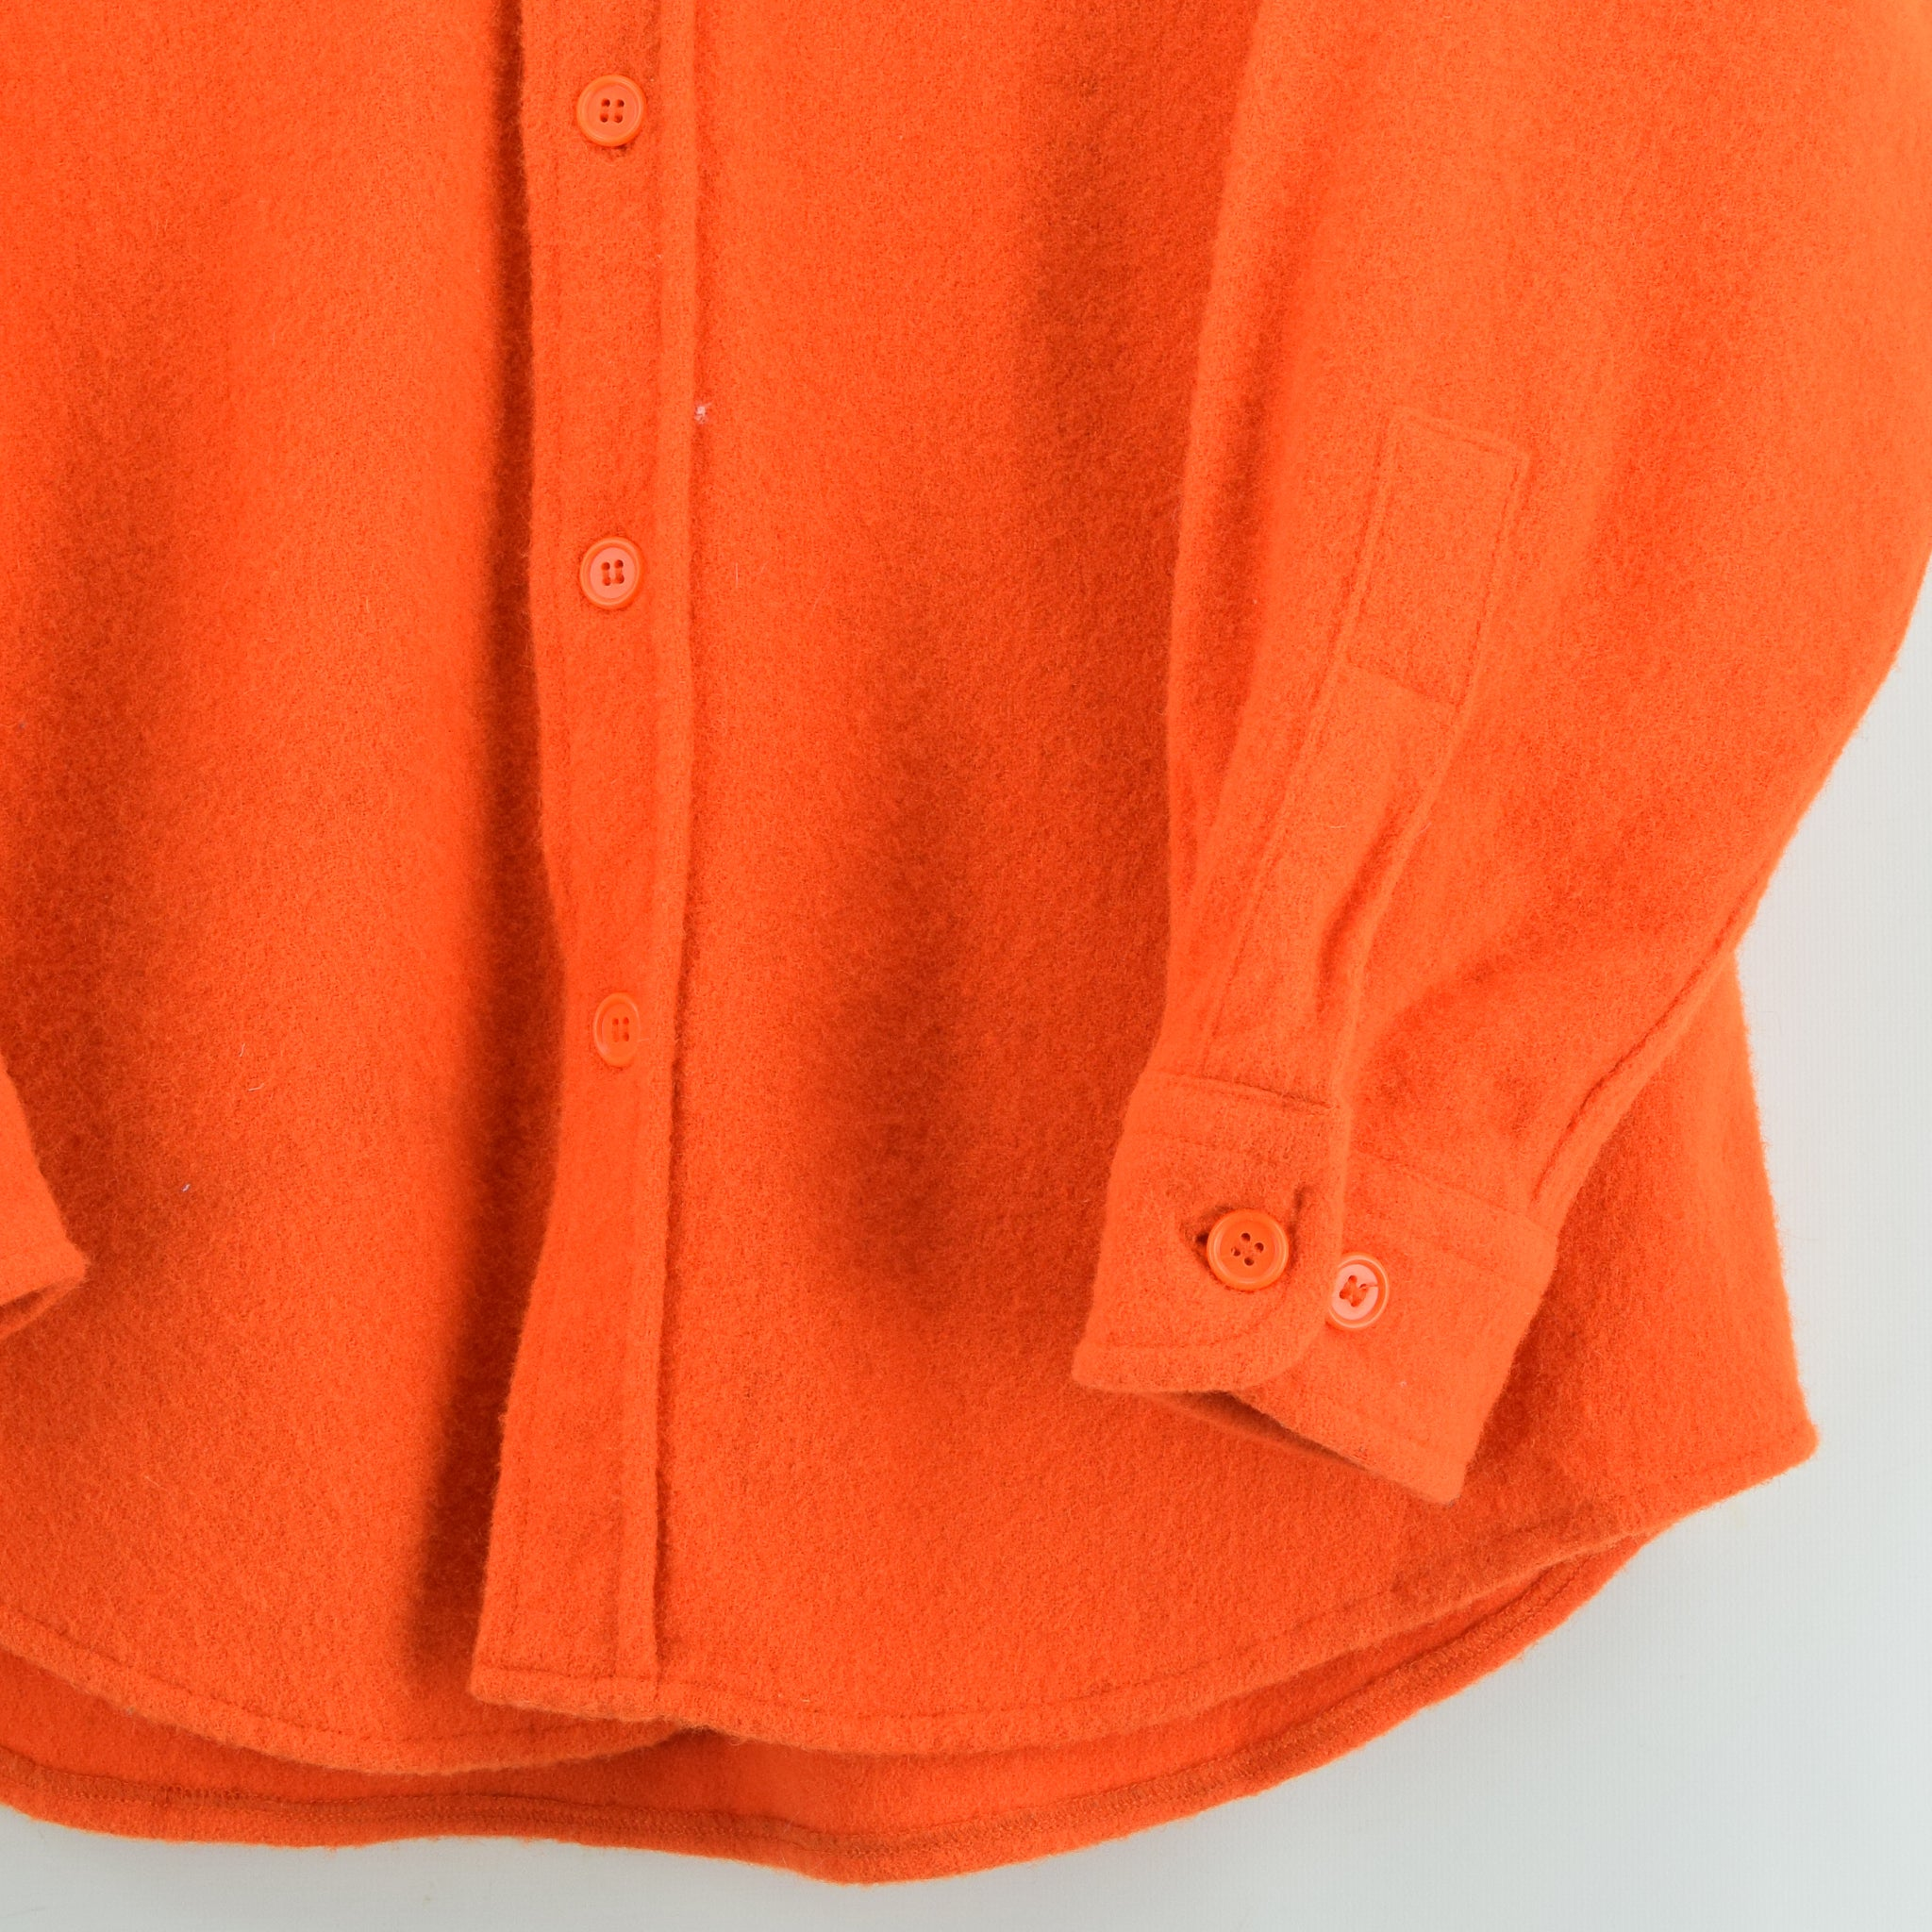 Vintage Woolrich Bright Orange Brushed Wool CPO Style Hunting Shirt Jacket M / L front hem